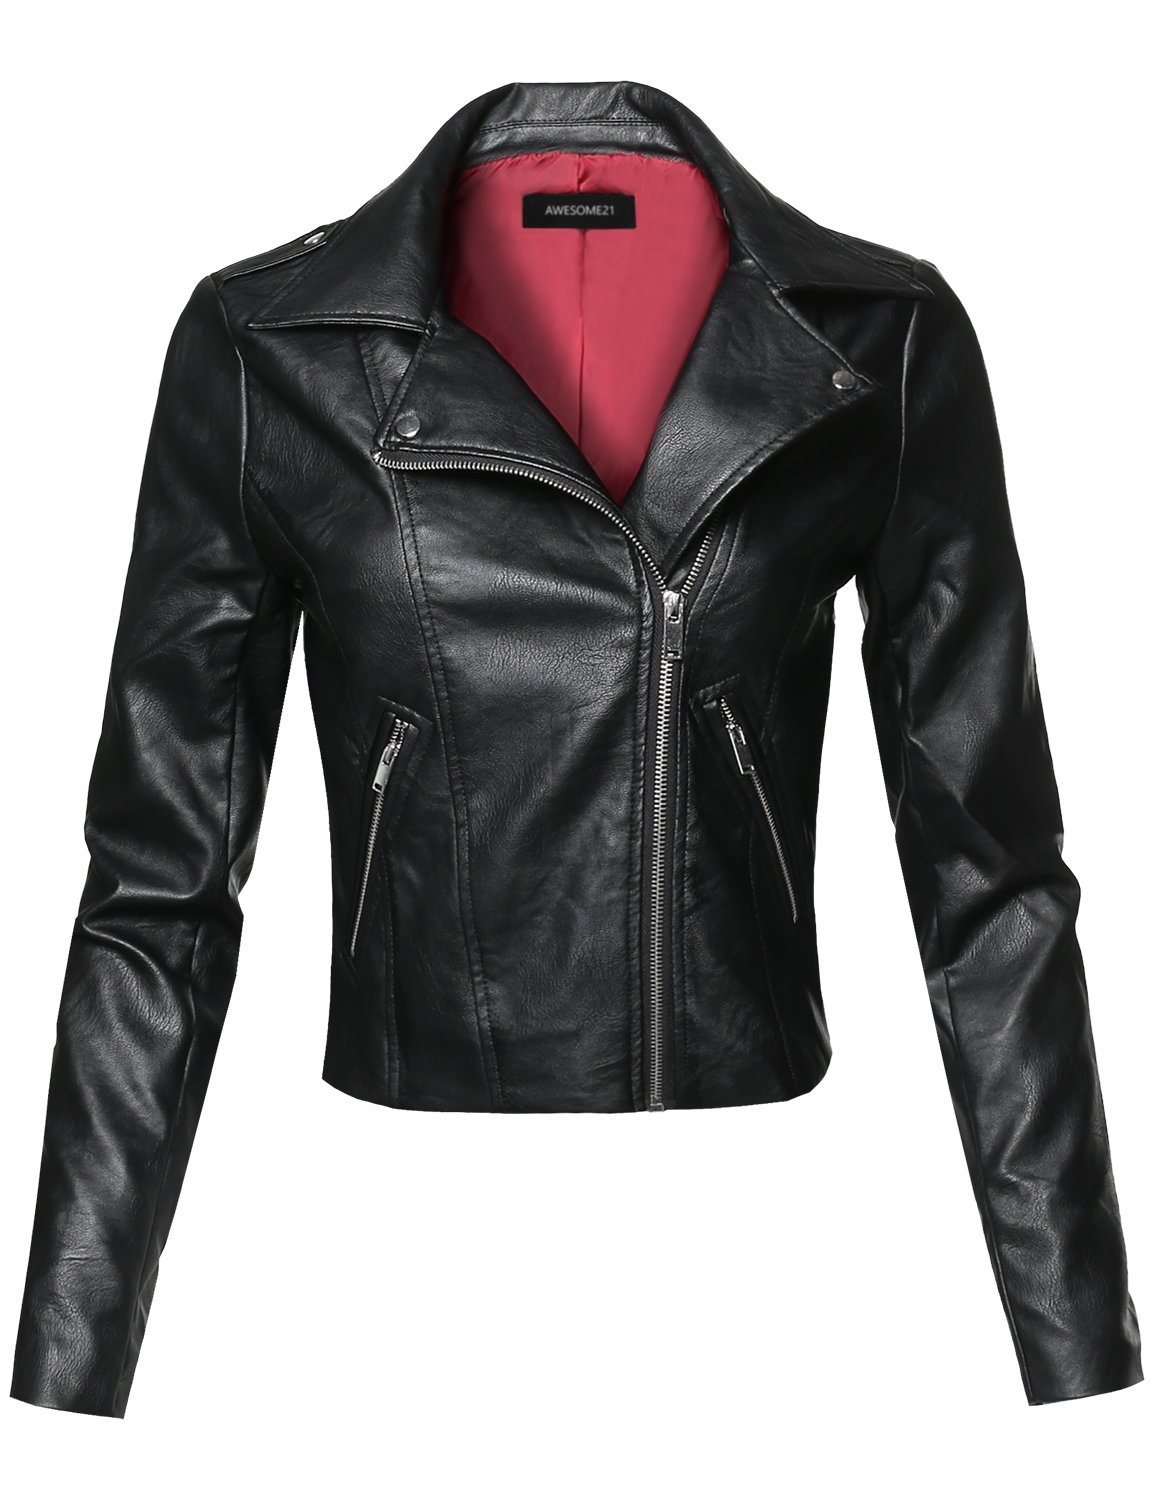 Casual Asymmetrical Zipper Floral Embroidered Moto Leather Jacket Black Size L